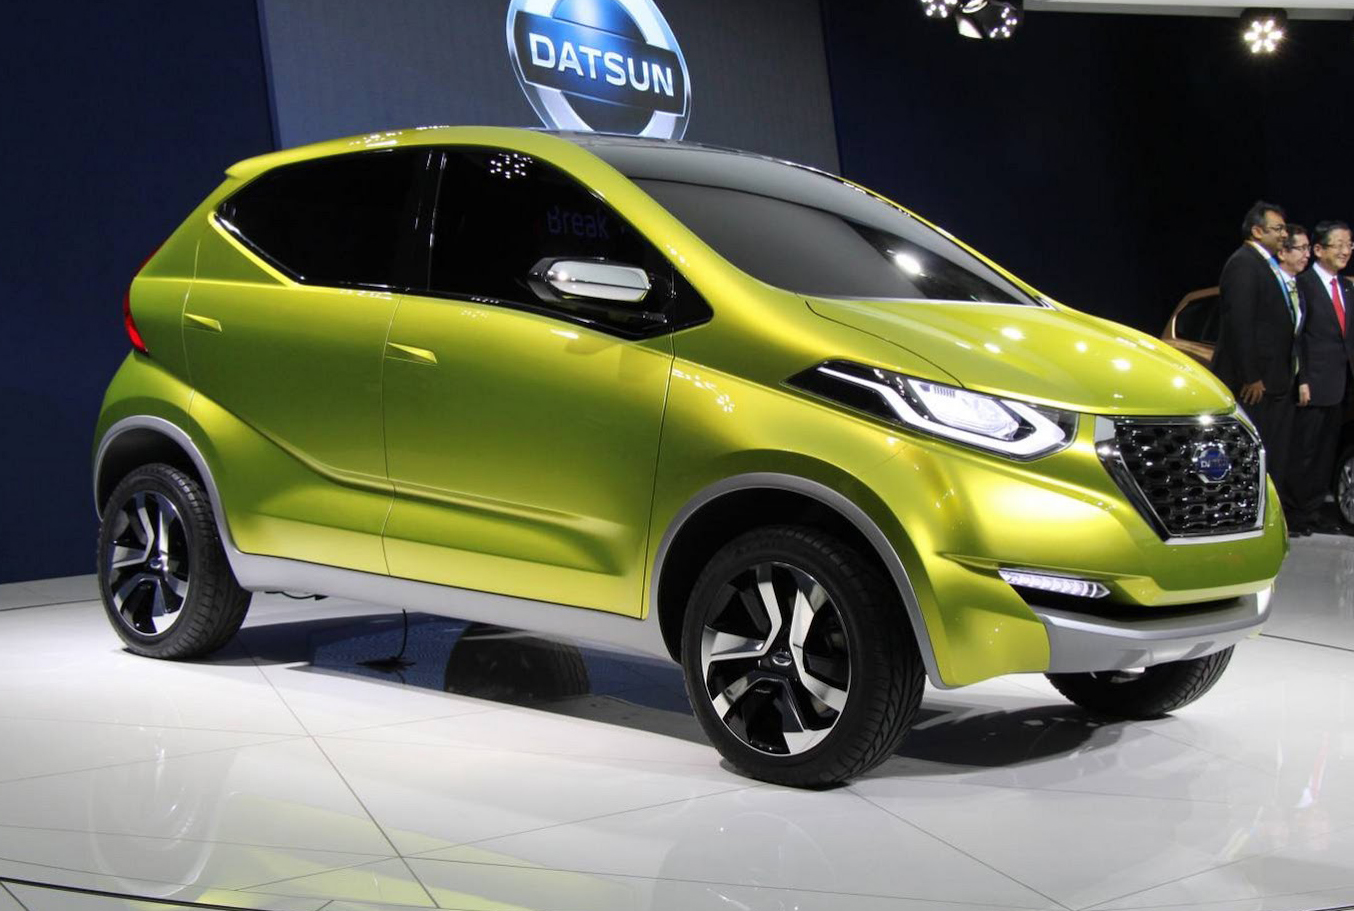 New Datsun Redi-GO Coming To India In May 2015; Will Be